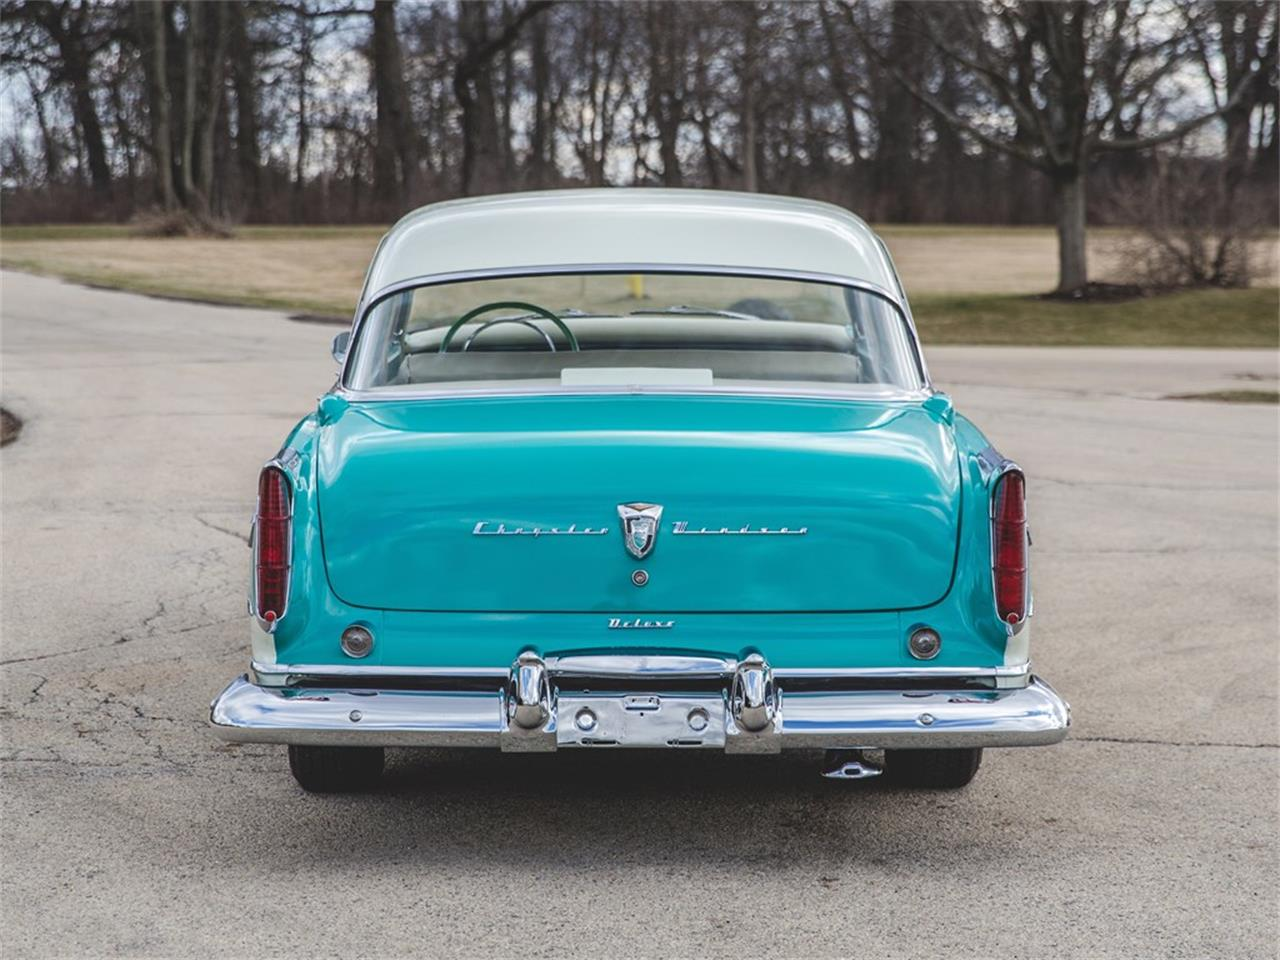 Large Picture of '55 Windsor Auction Vehicle Offered by RM Sotheby's - N8RK